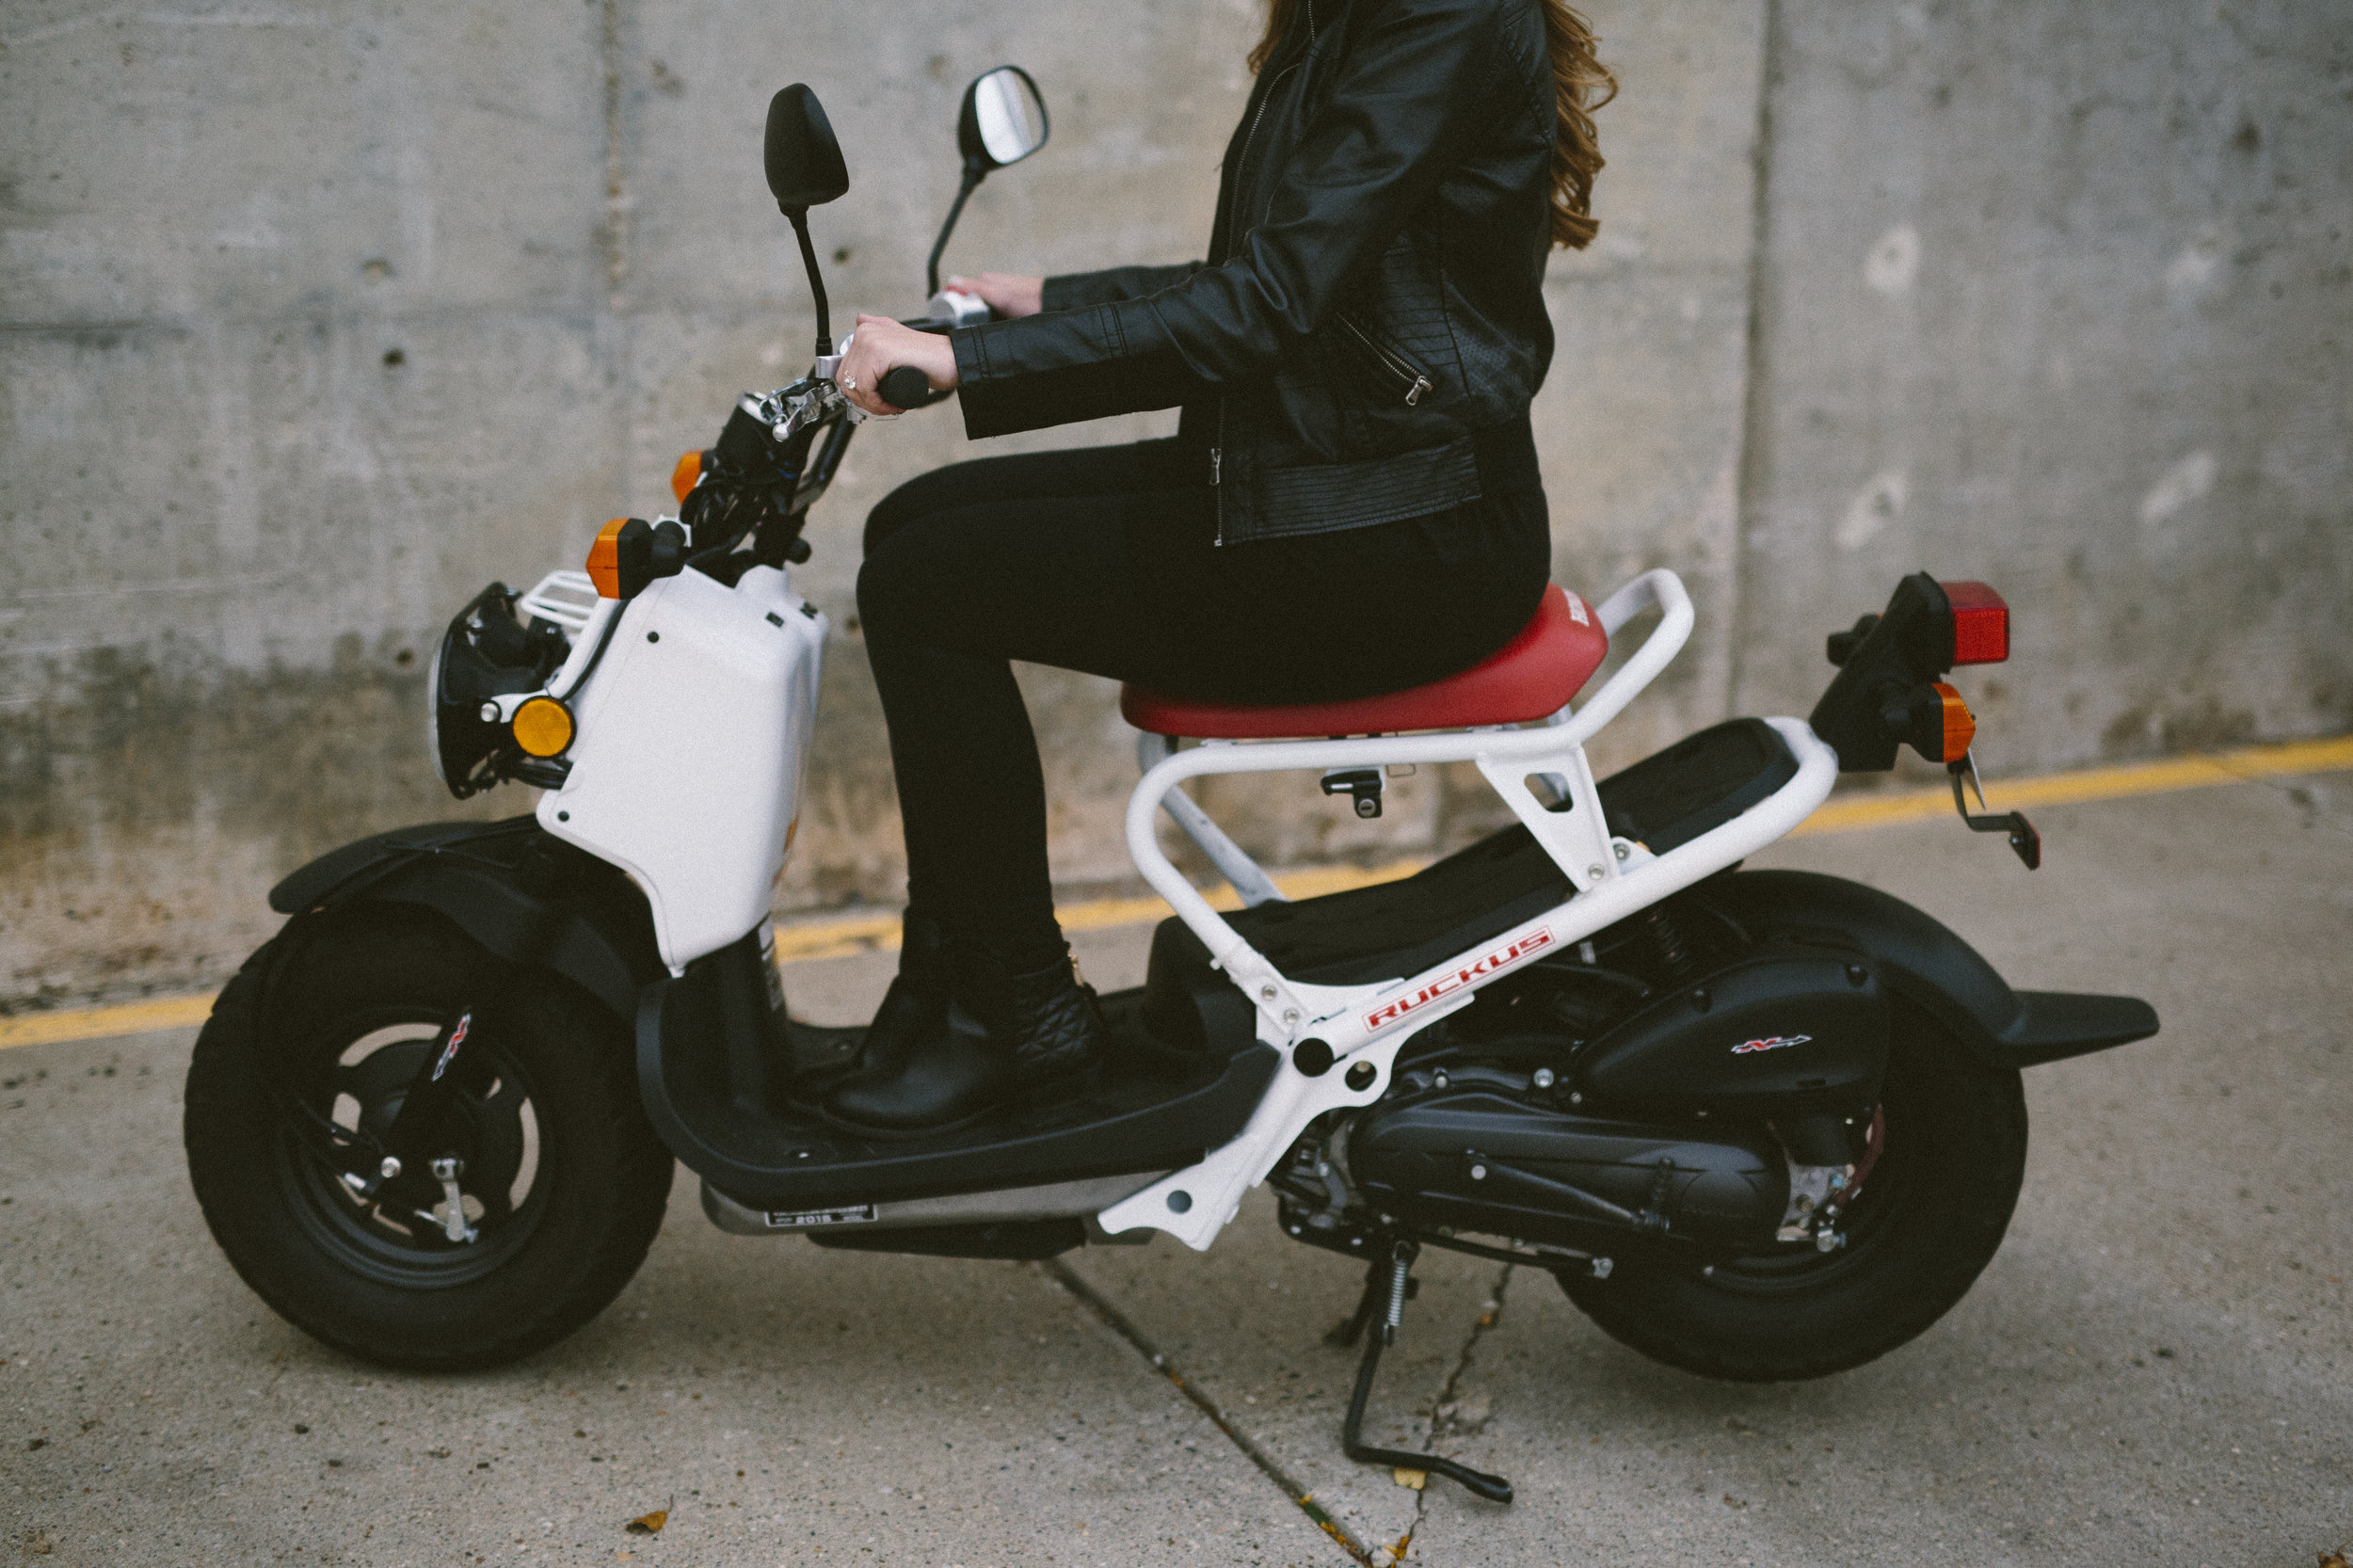 10 Things I Love About The Honda Ruckus Lifestyle Bismarck Nd